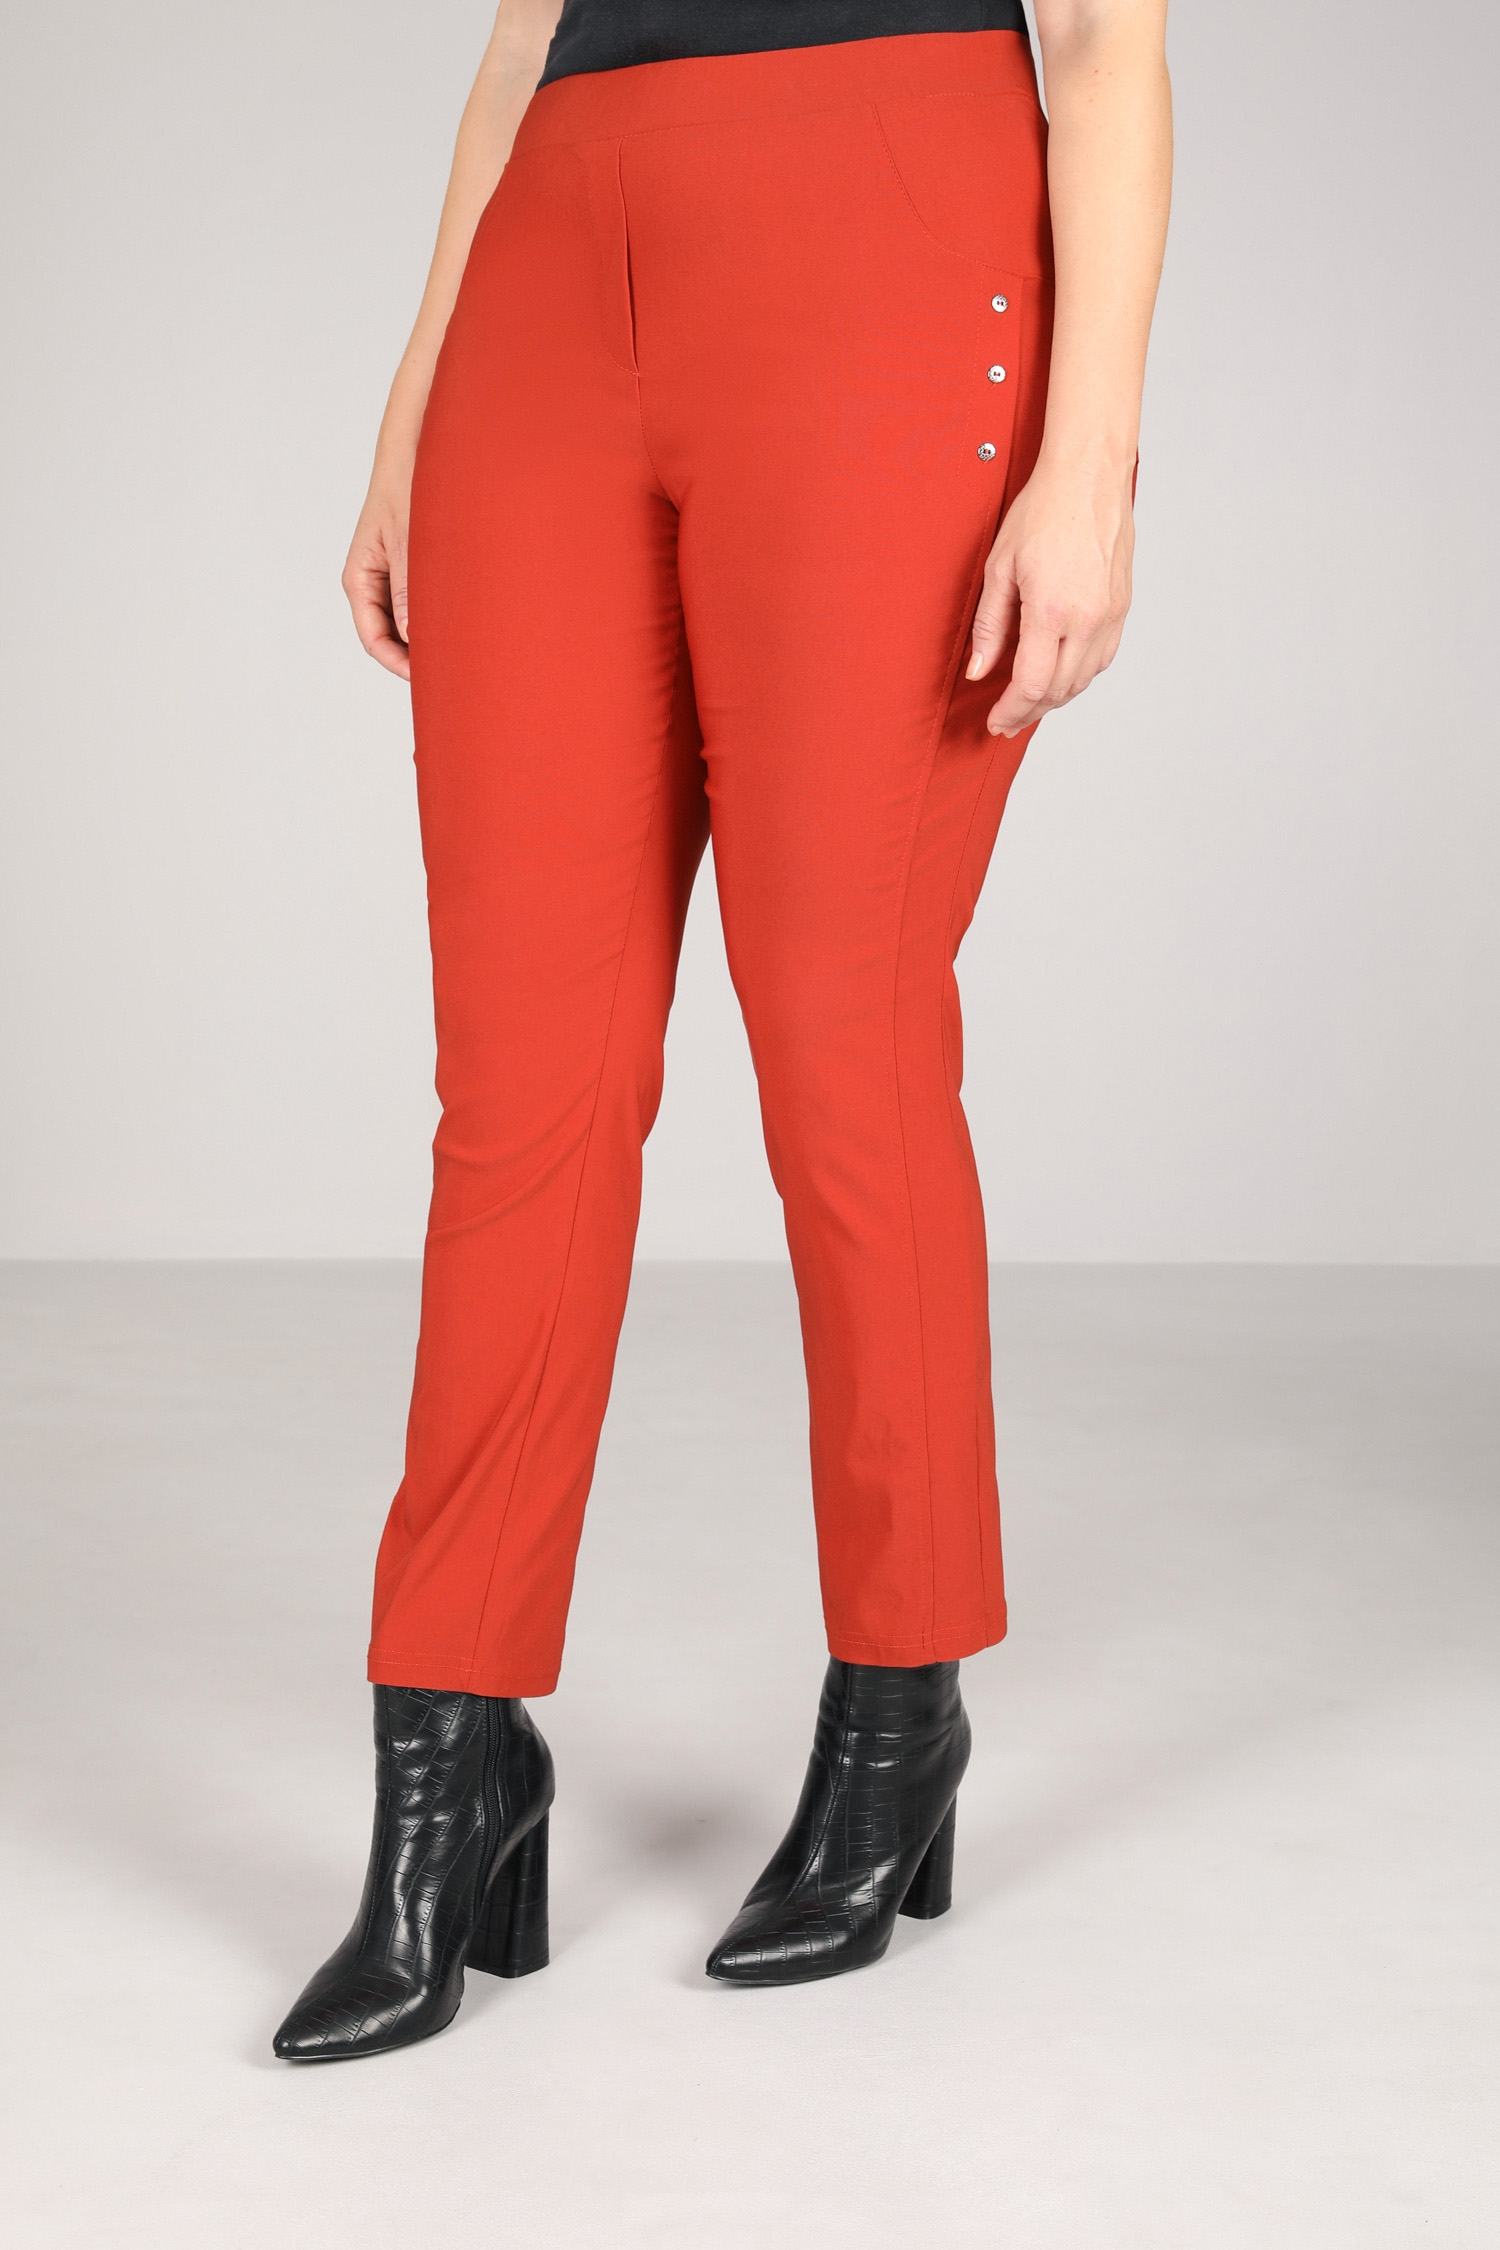 Stylish pants with buttons